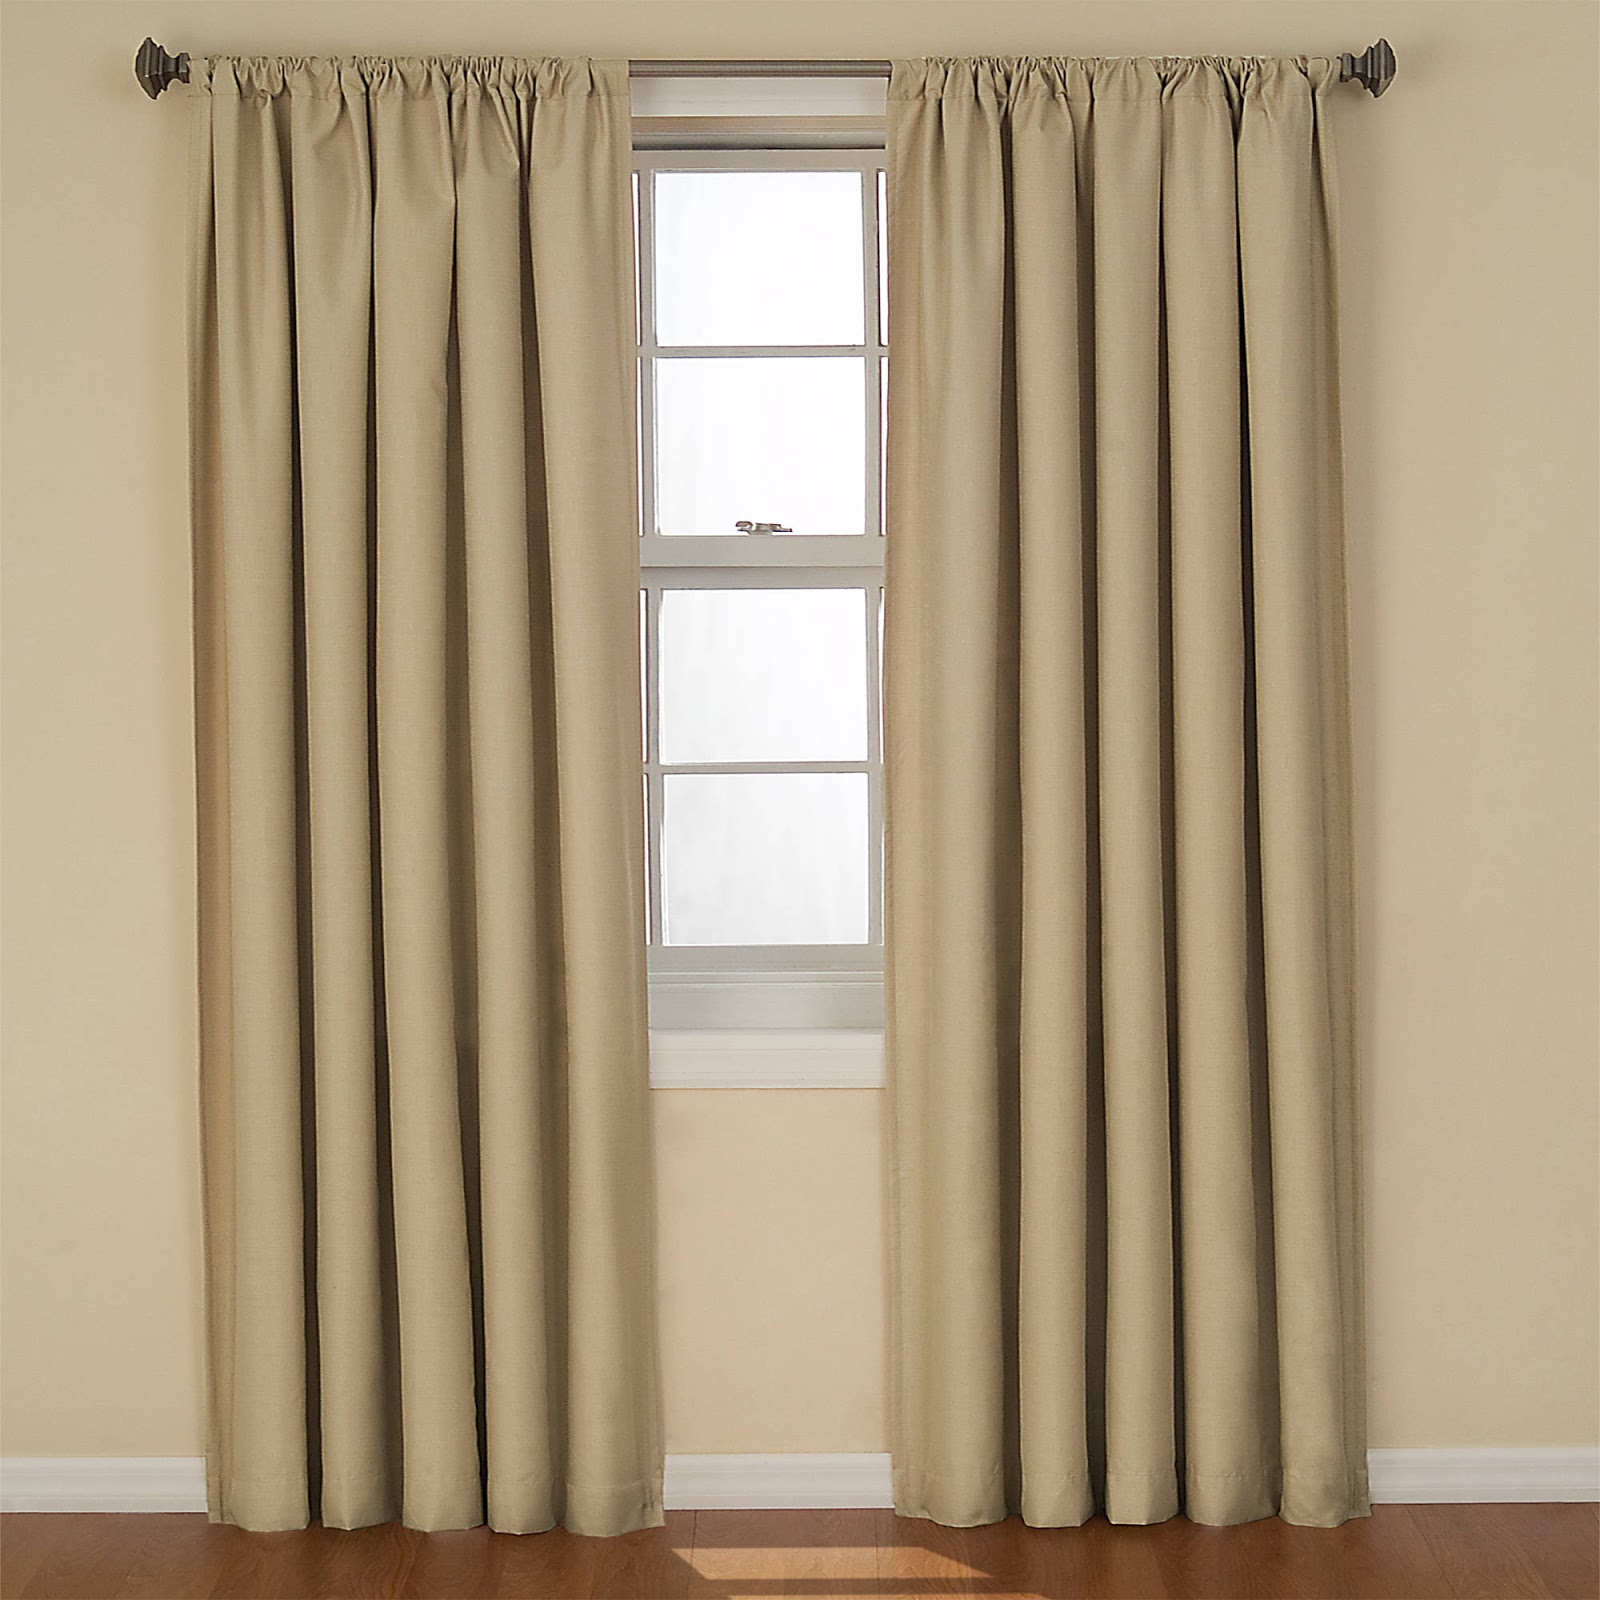 Mirrored Curtains Miss Mustard Seed Mission Mitsubishi Air Curtain